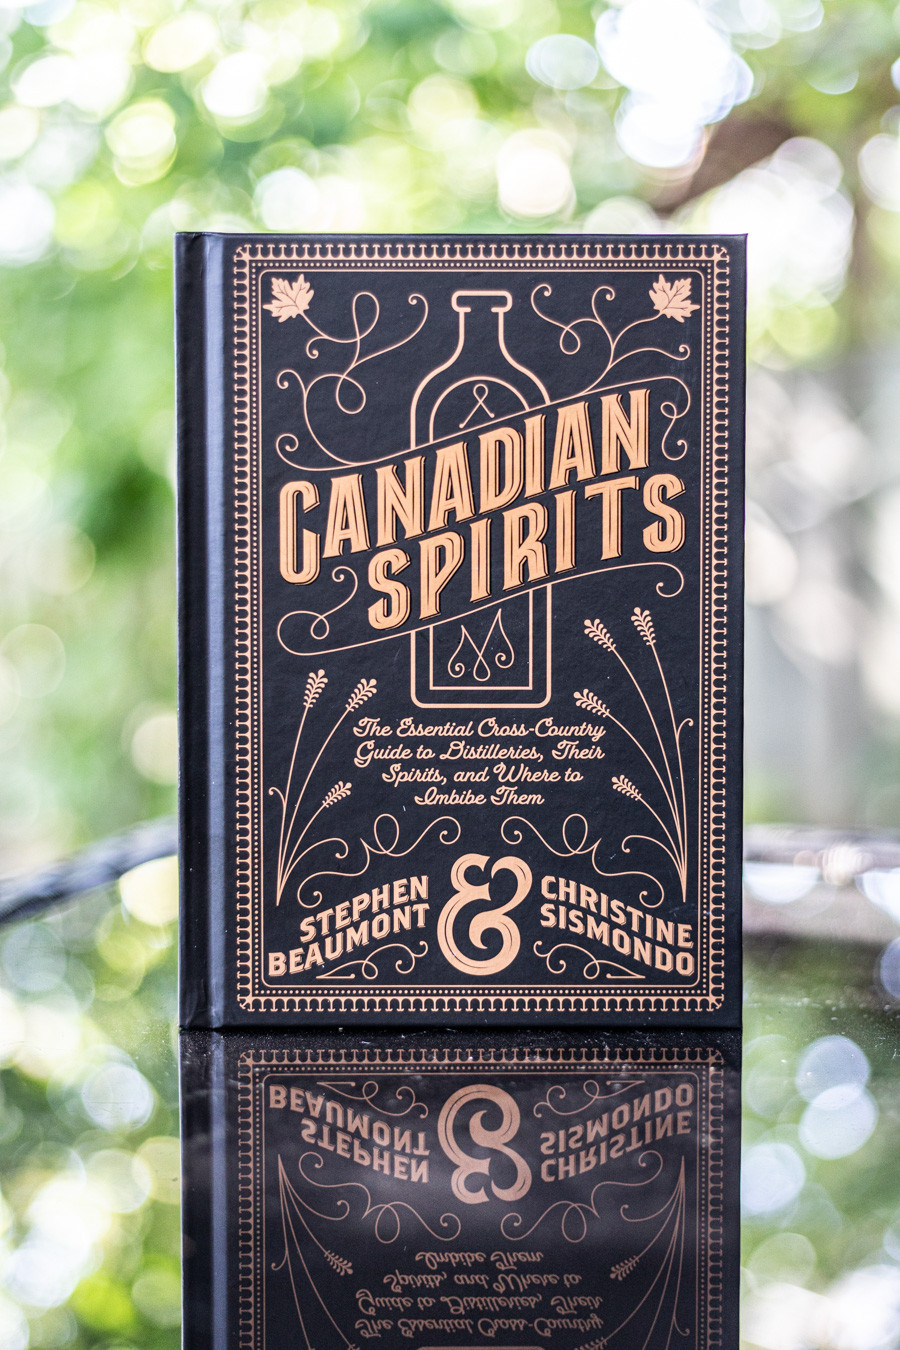 A book titled Canadian Spirits by Christine Sismondo and Stephen Beaumont